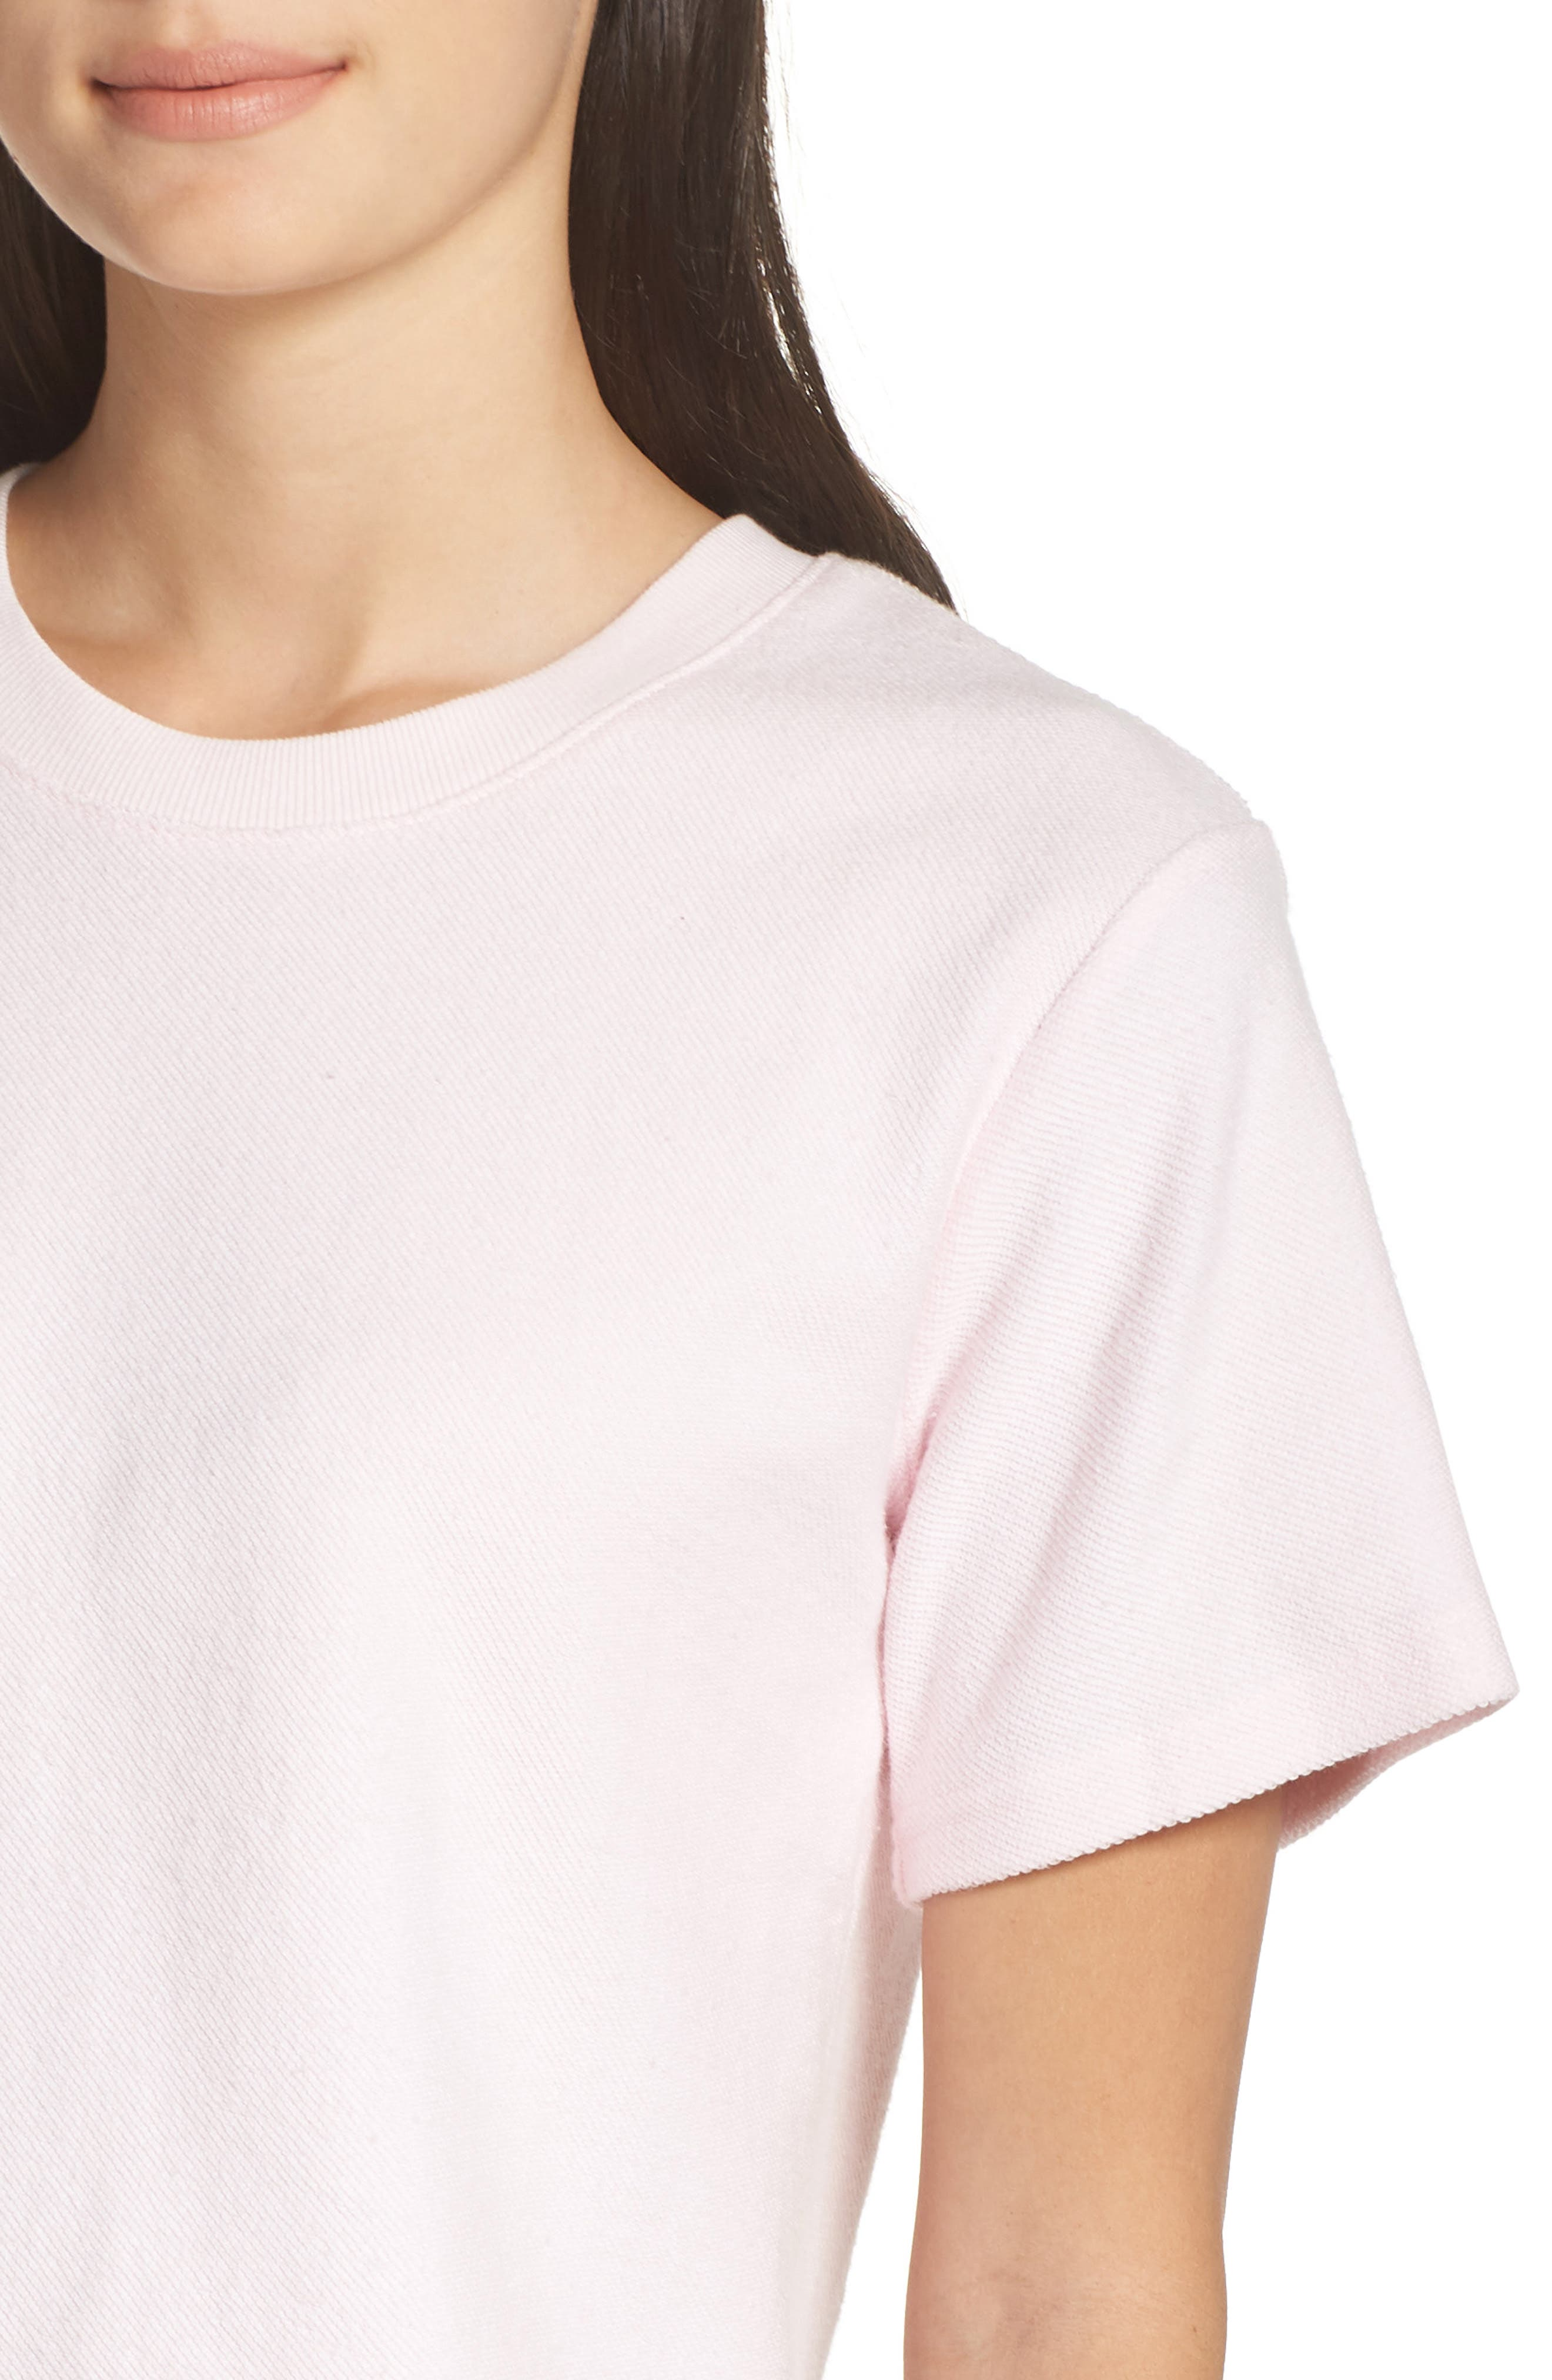 CHALMERS, Indy Tee, Alternate thumbnail 4, color, BLUSH PINK BABY TERRY